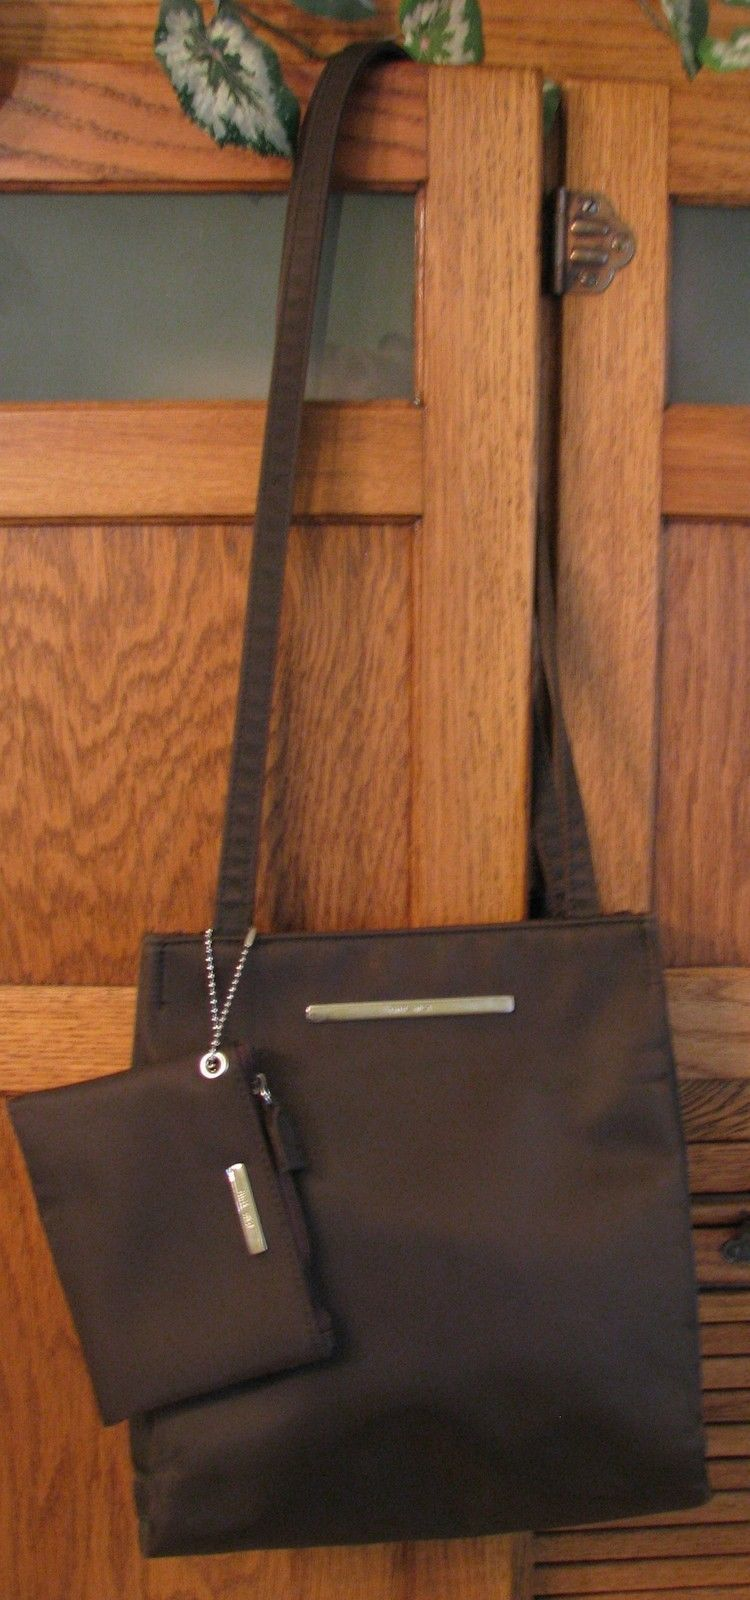 Primary image for Nine West PURSE Brown Shoulder Bag w Change Holder Satchel Handbag